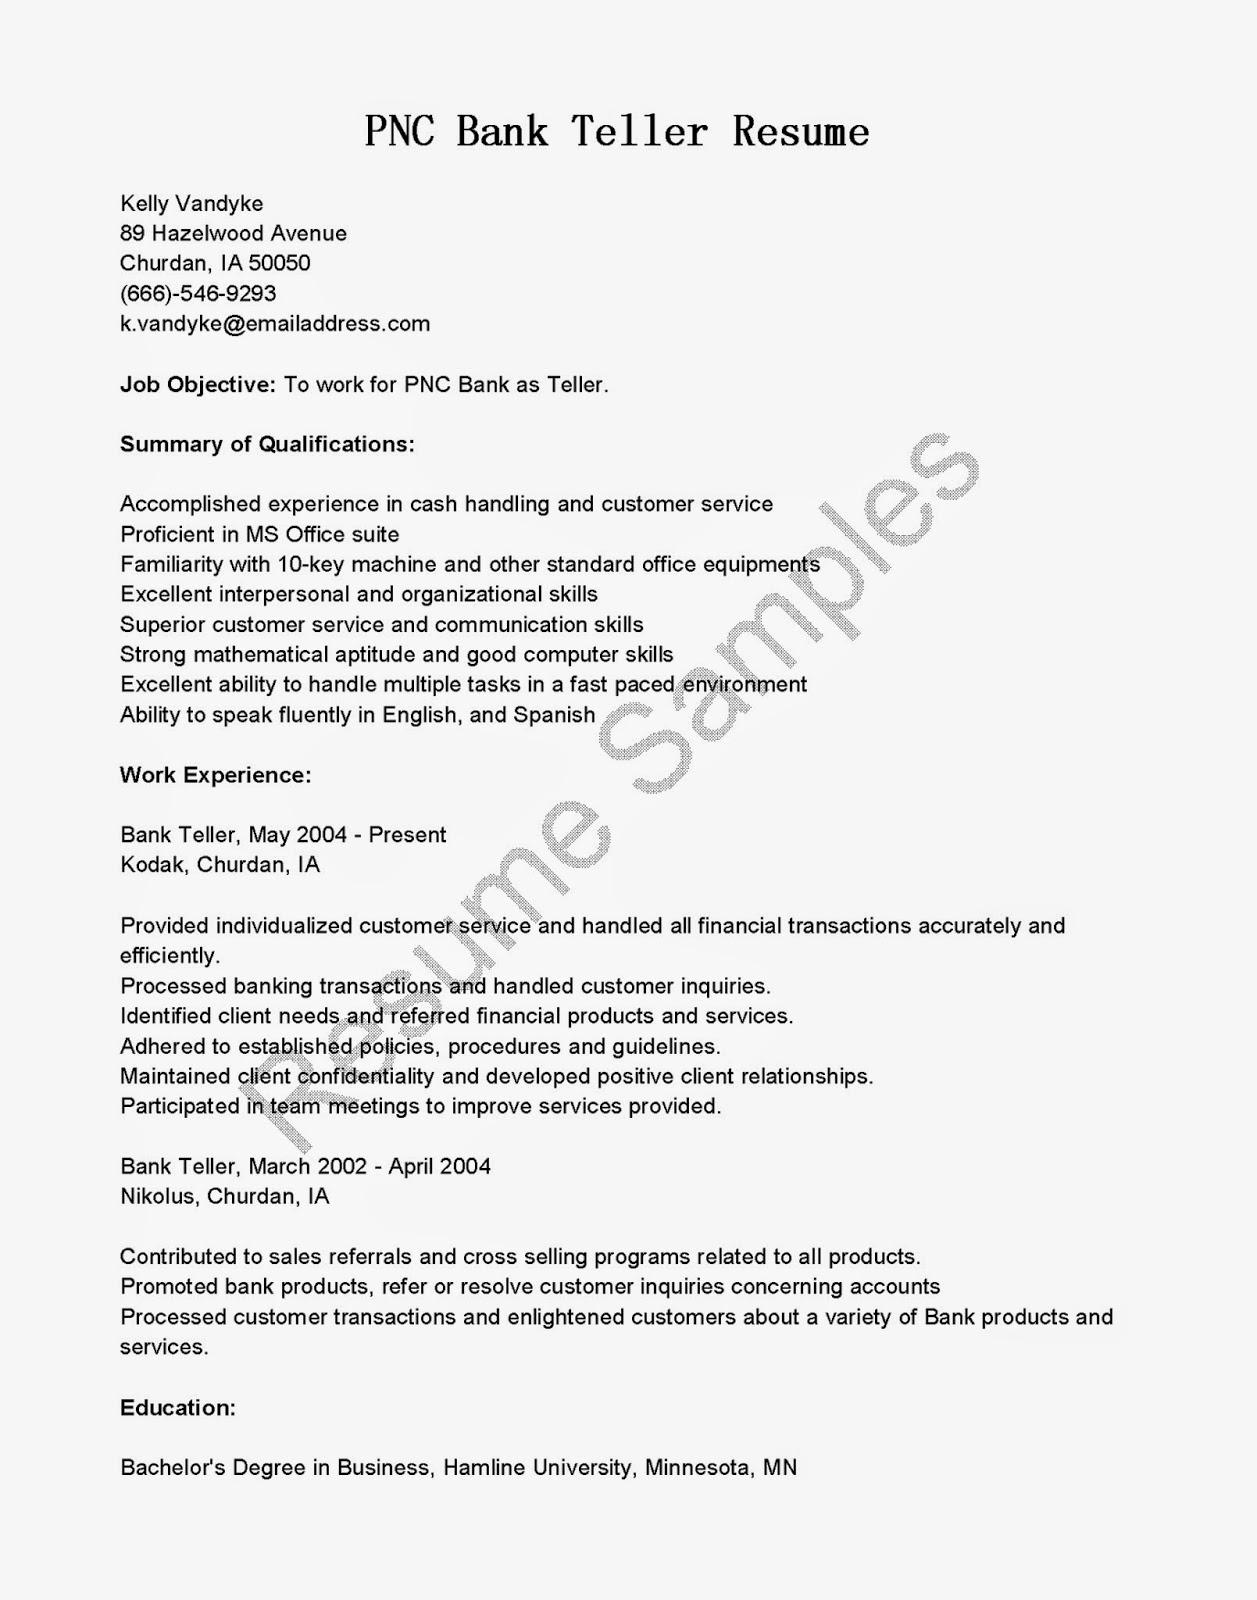 Admission essay writing service  High Quality 100